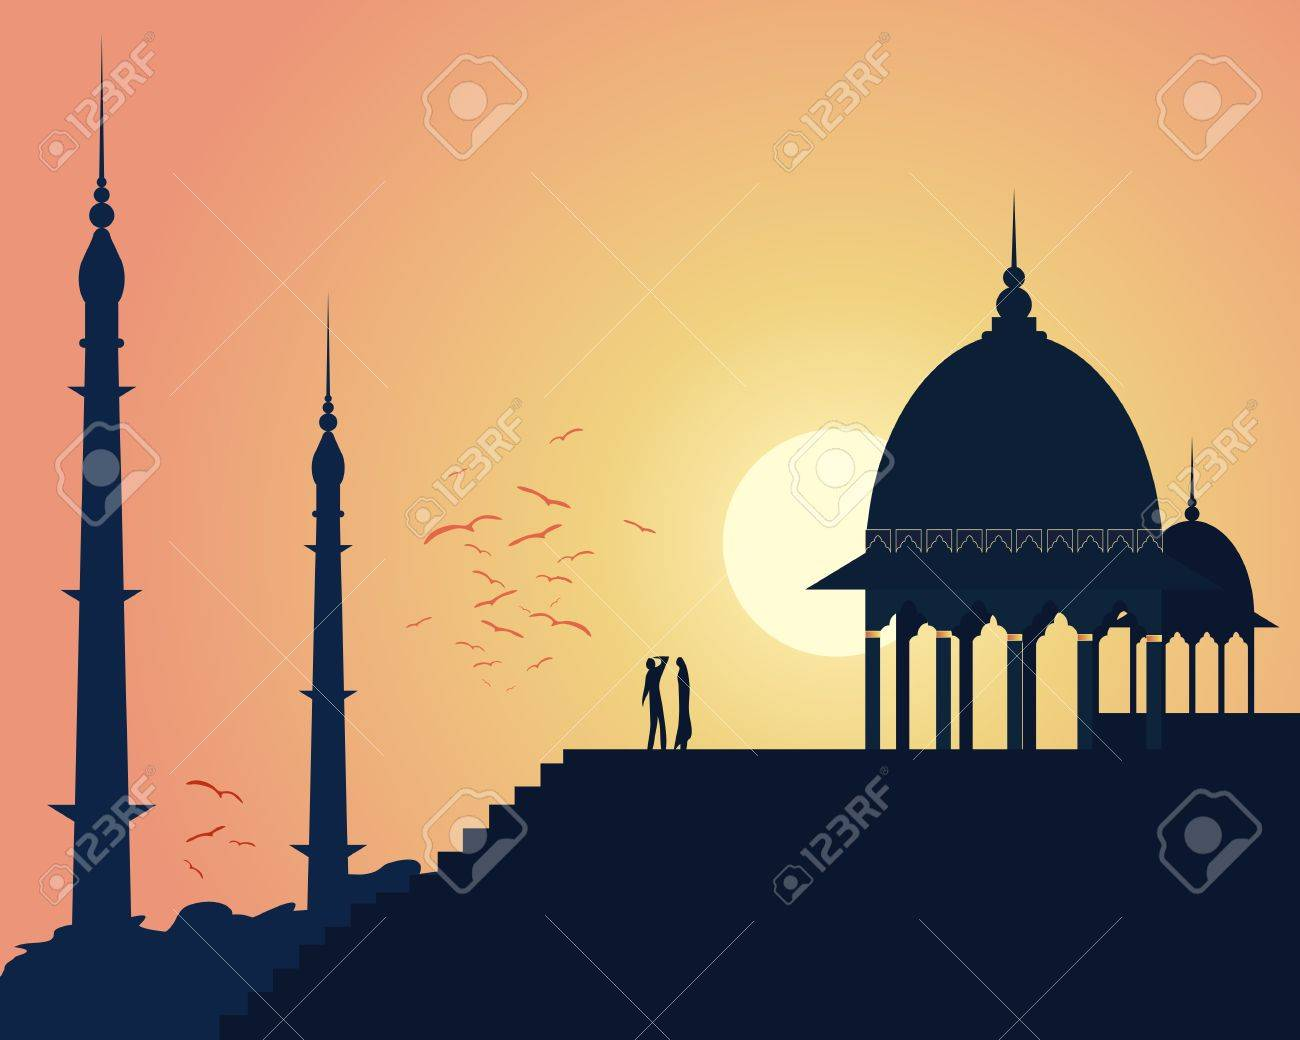 an illustration of beautiful asian architecture with domes and spires in an urban landscape under a setting sun Stock Vector - 17510986